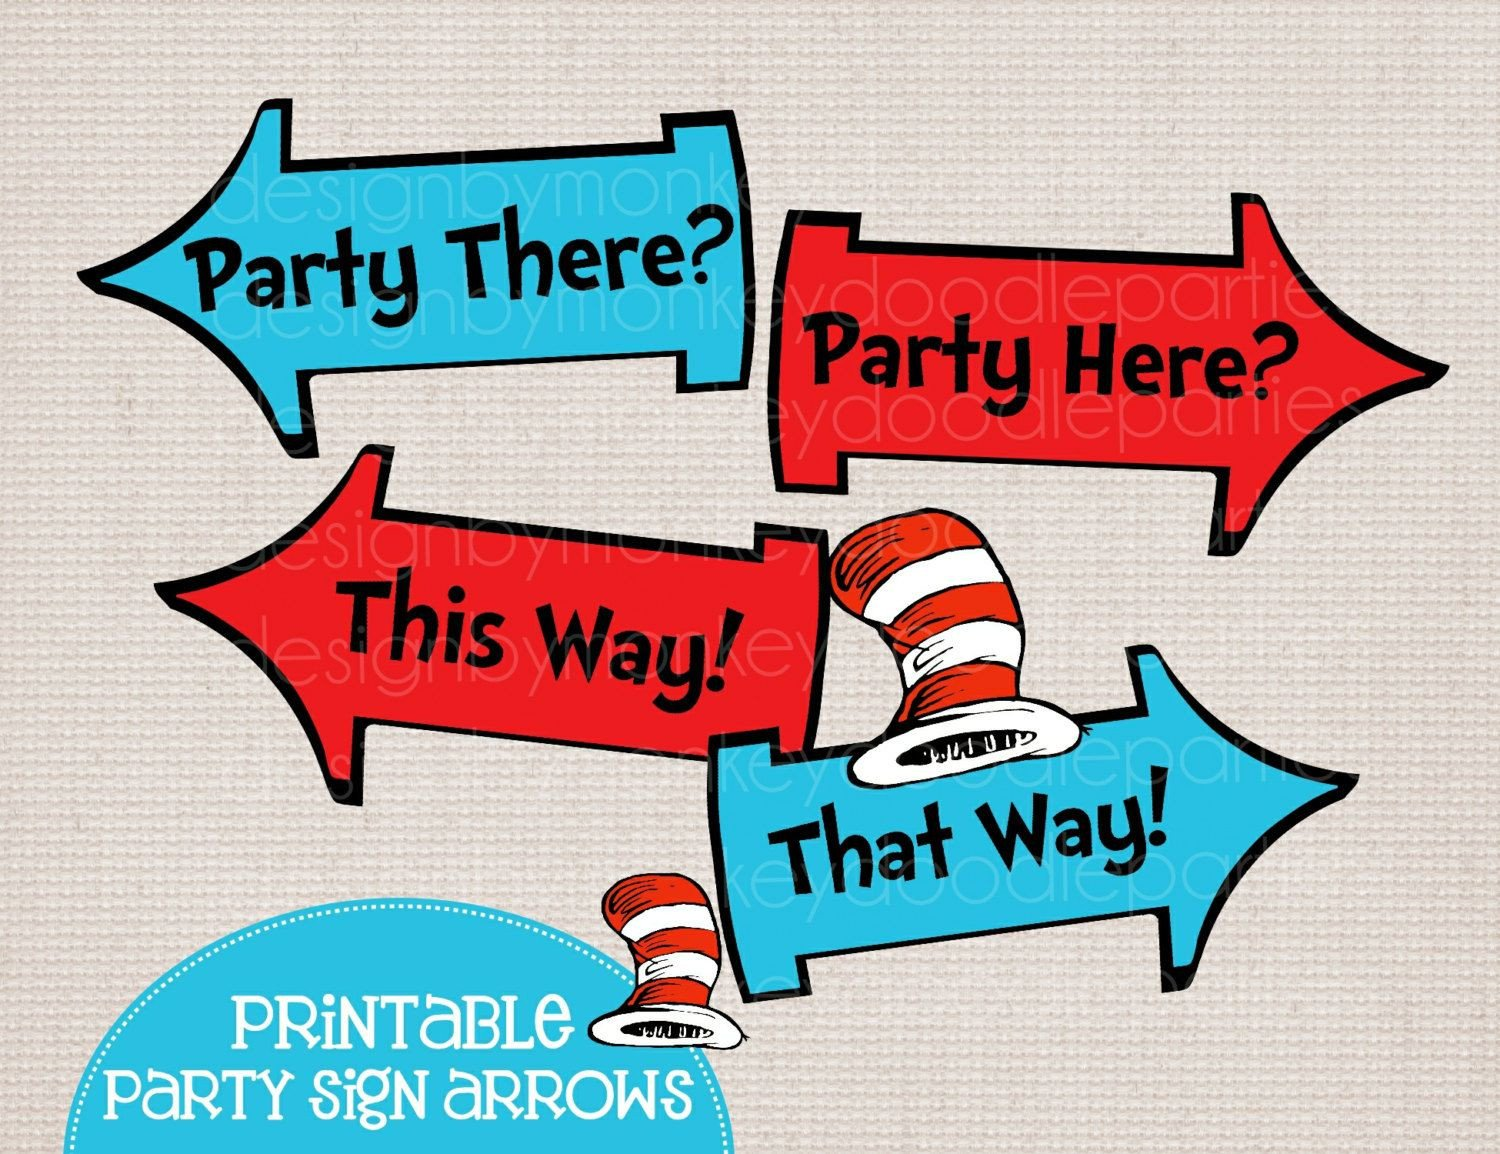 Adorable Dr Seuss Cat in the Hat Inspired Printable Party